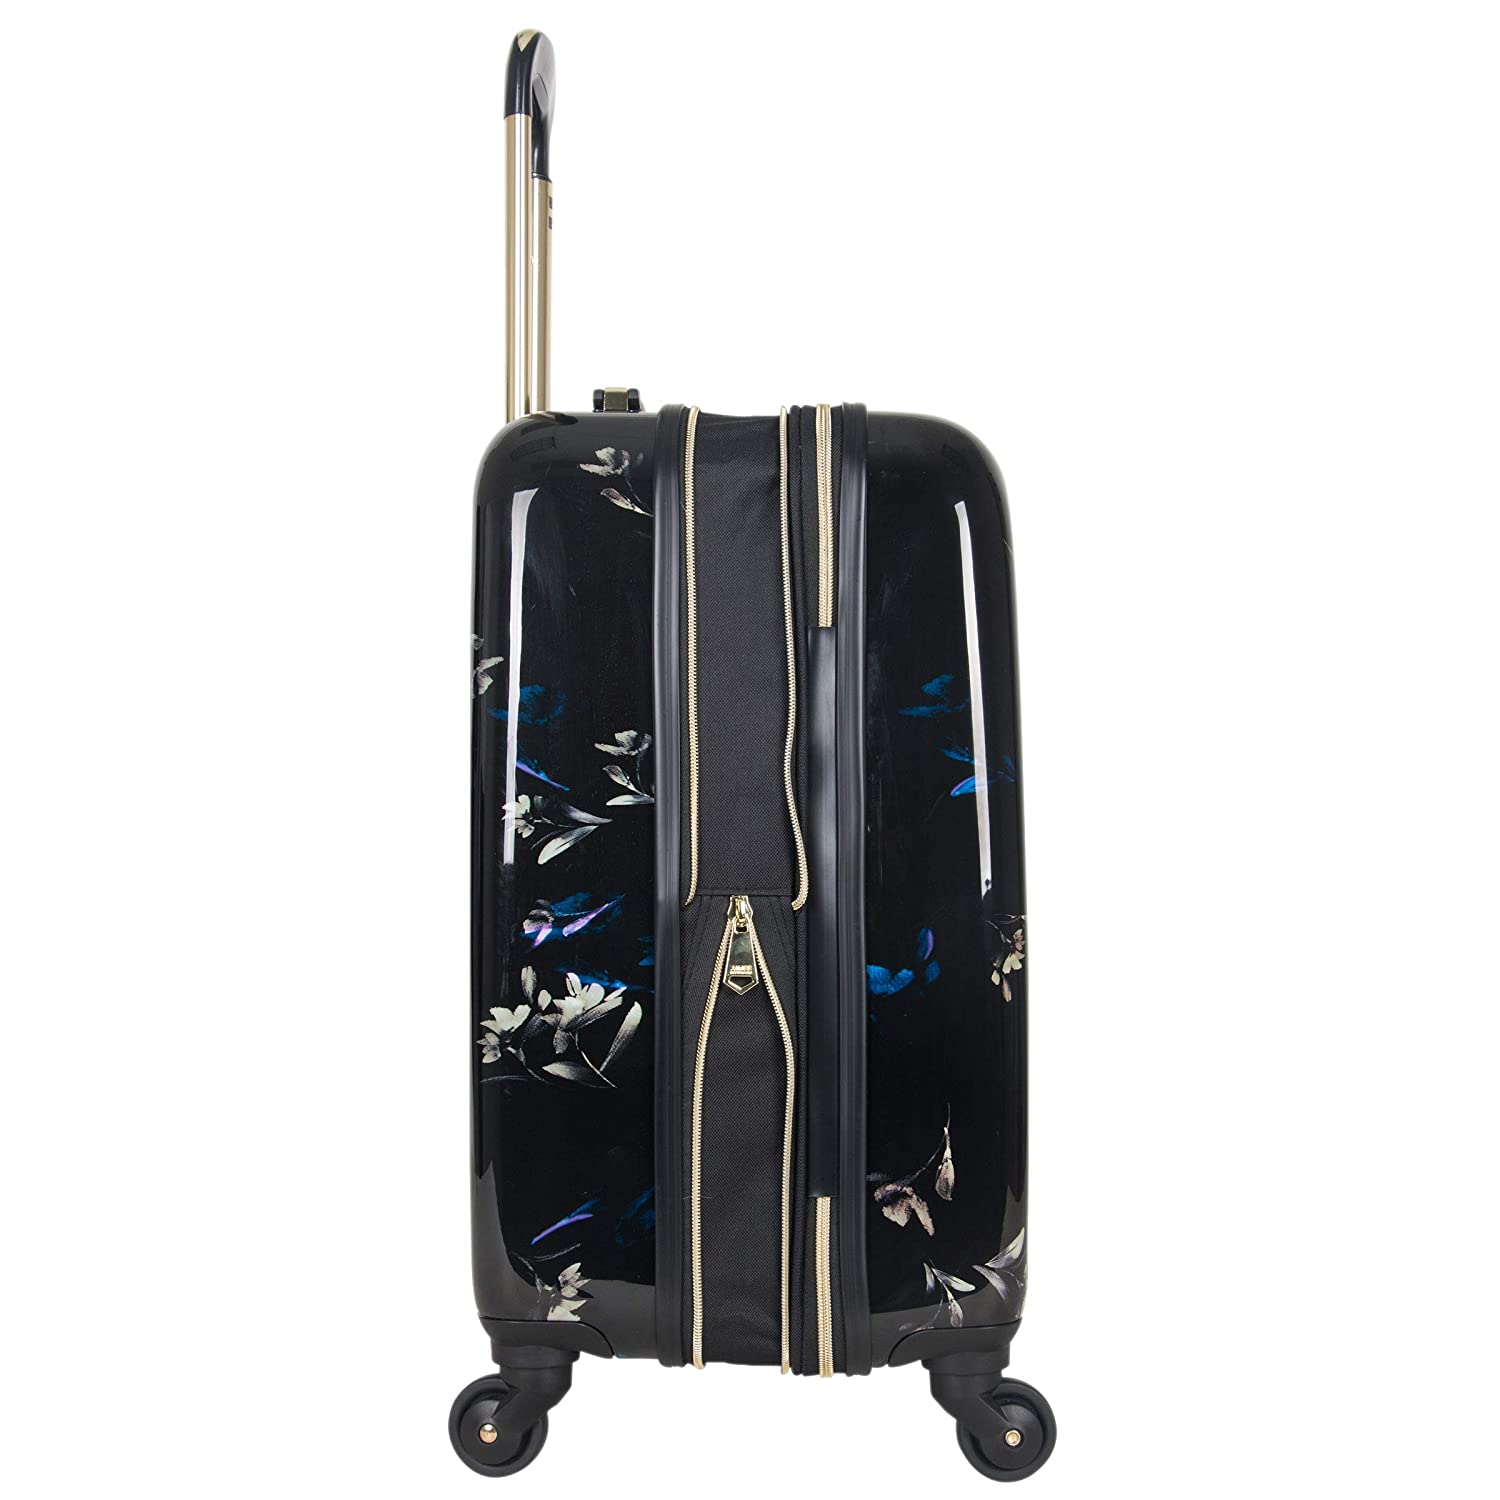 Aimee Kestenberg Women s Midnight Floral 20 Hardside Expandable 4-Wheel Spinner Carry-on Luggage